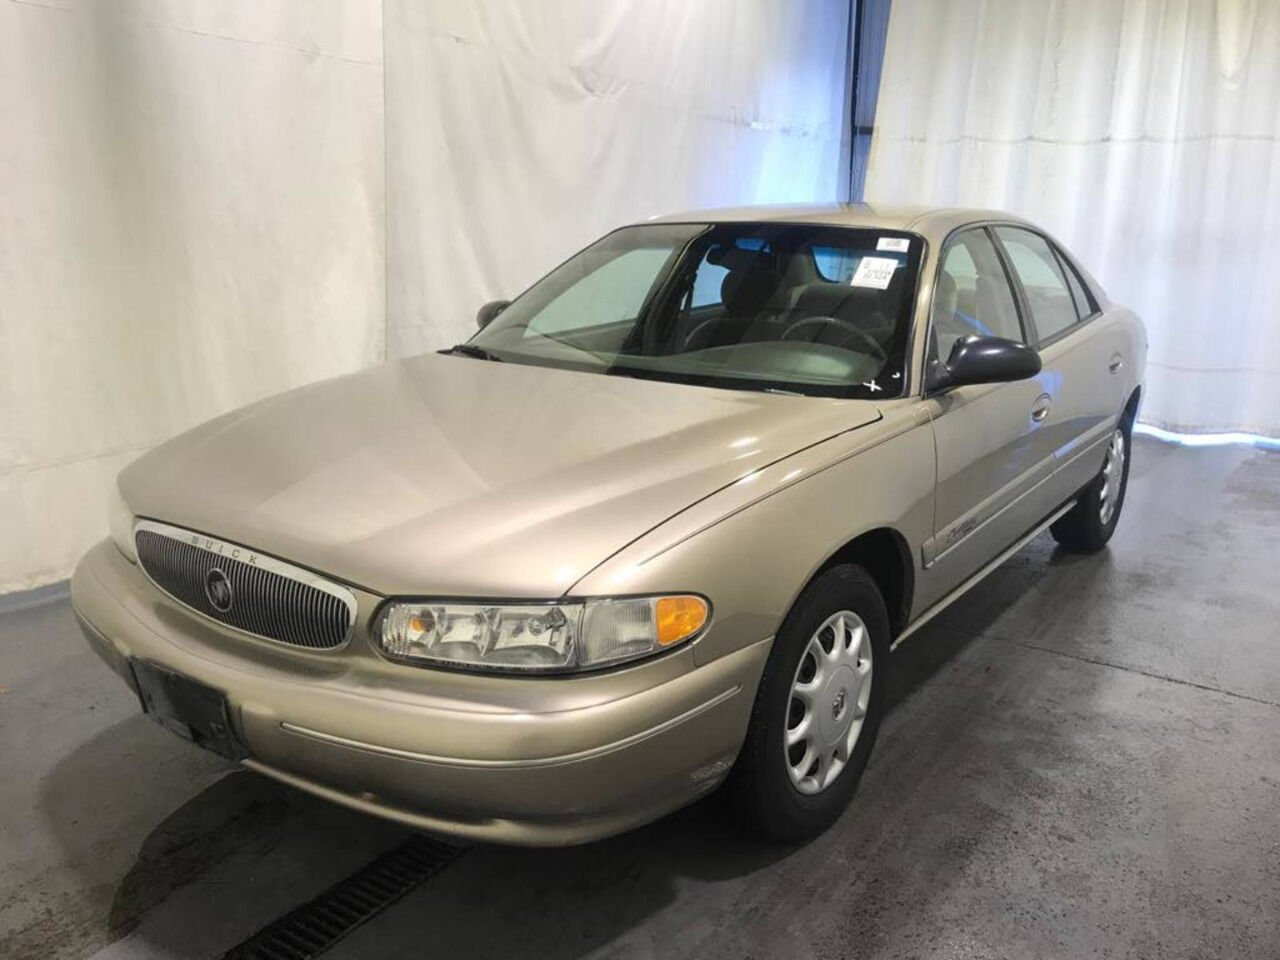 used 1999 buick century for sale carsforsale com used 1999 buick century for sale